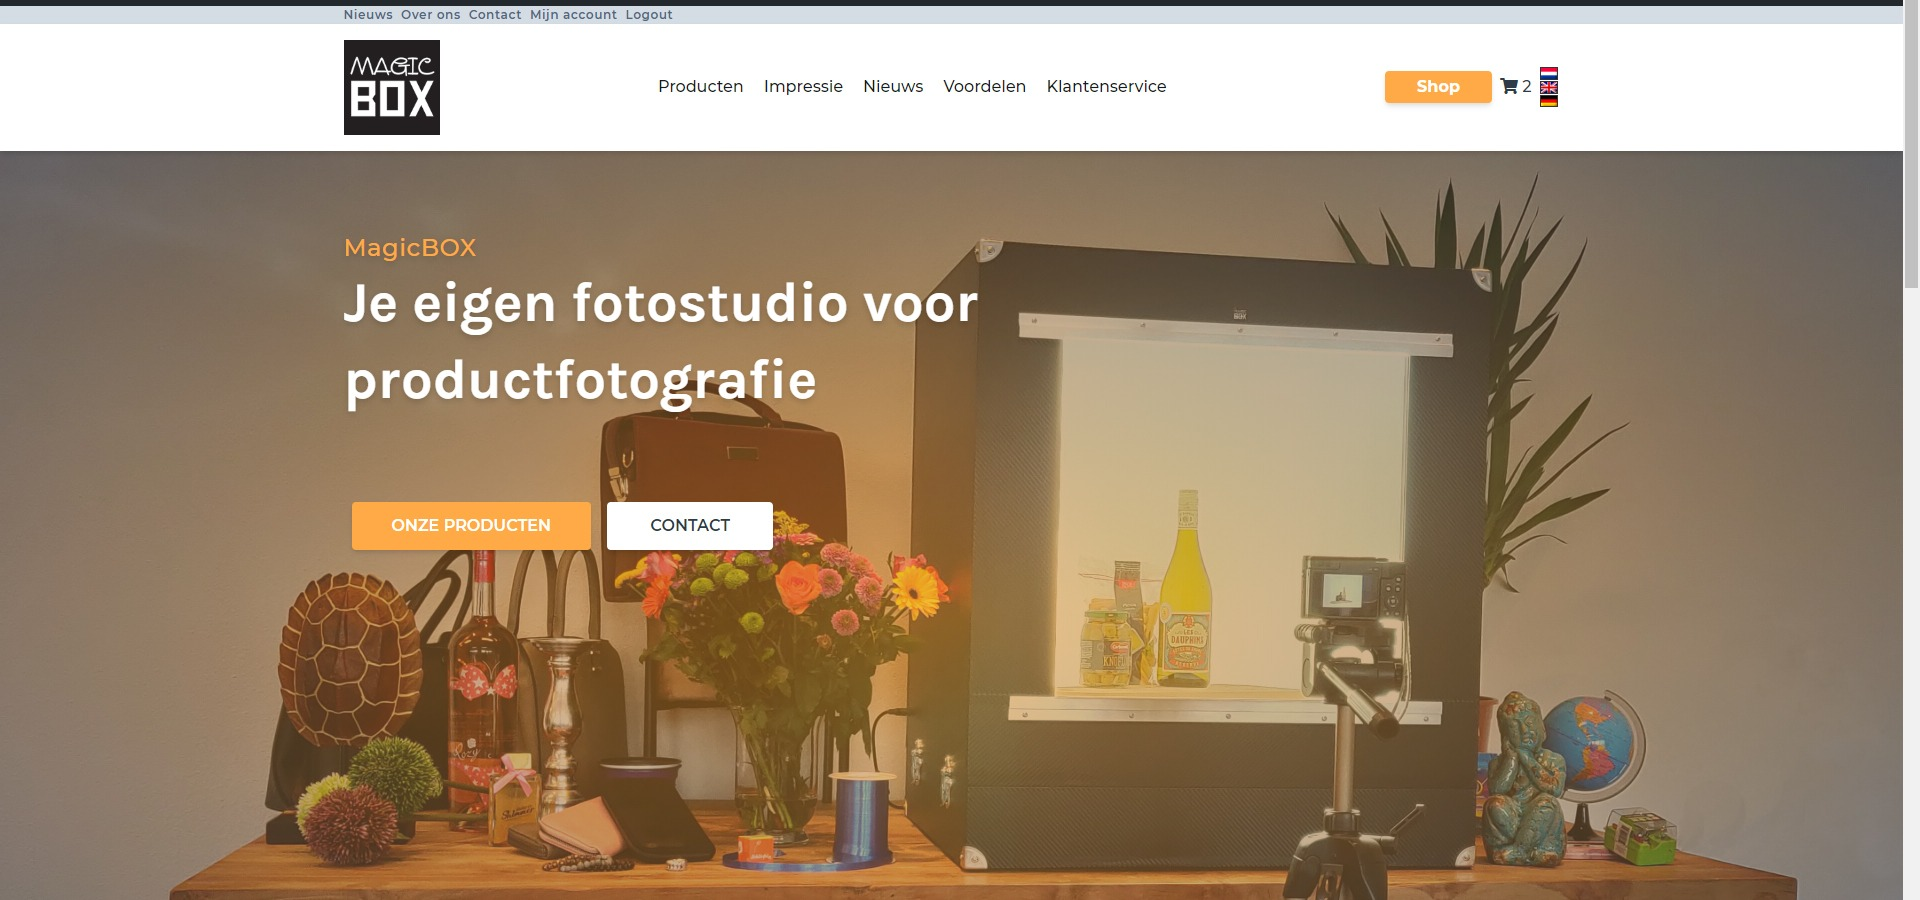 Productfotografie MagicBOX